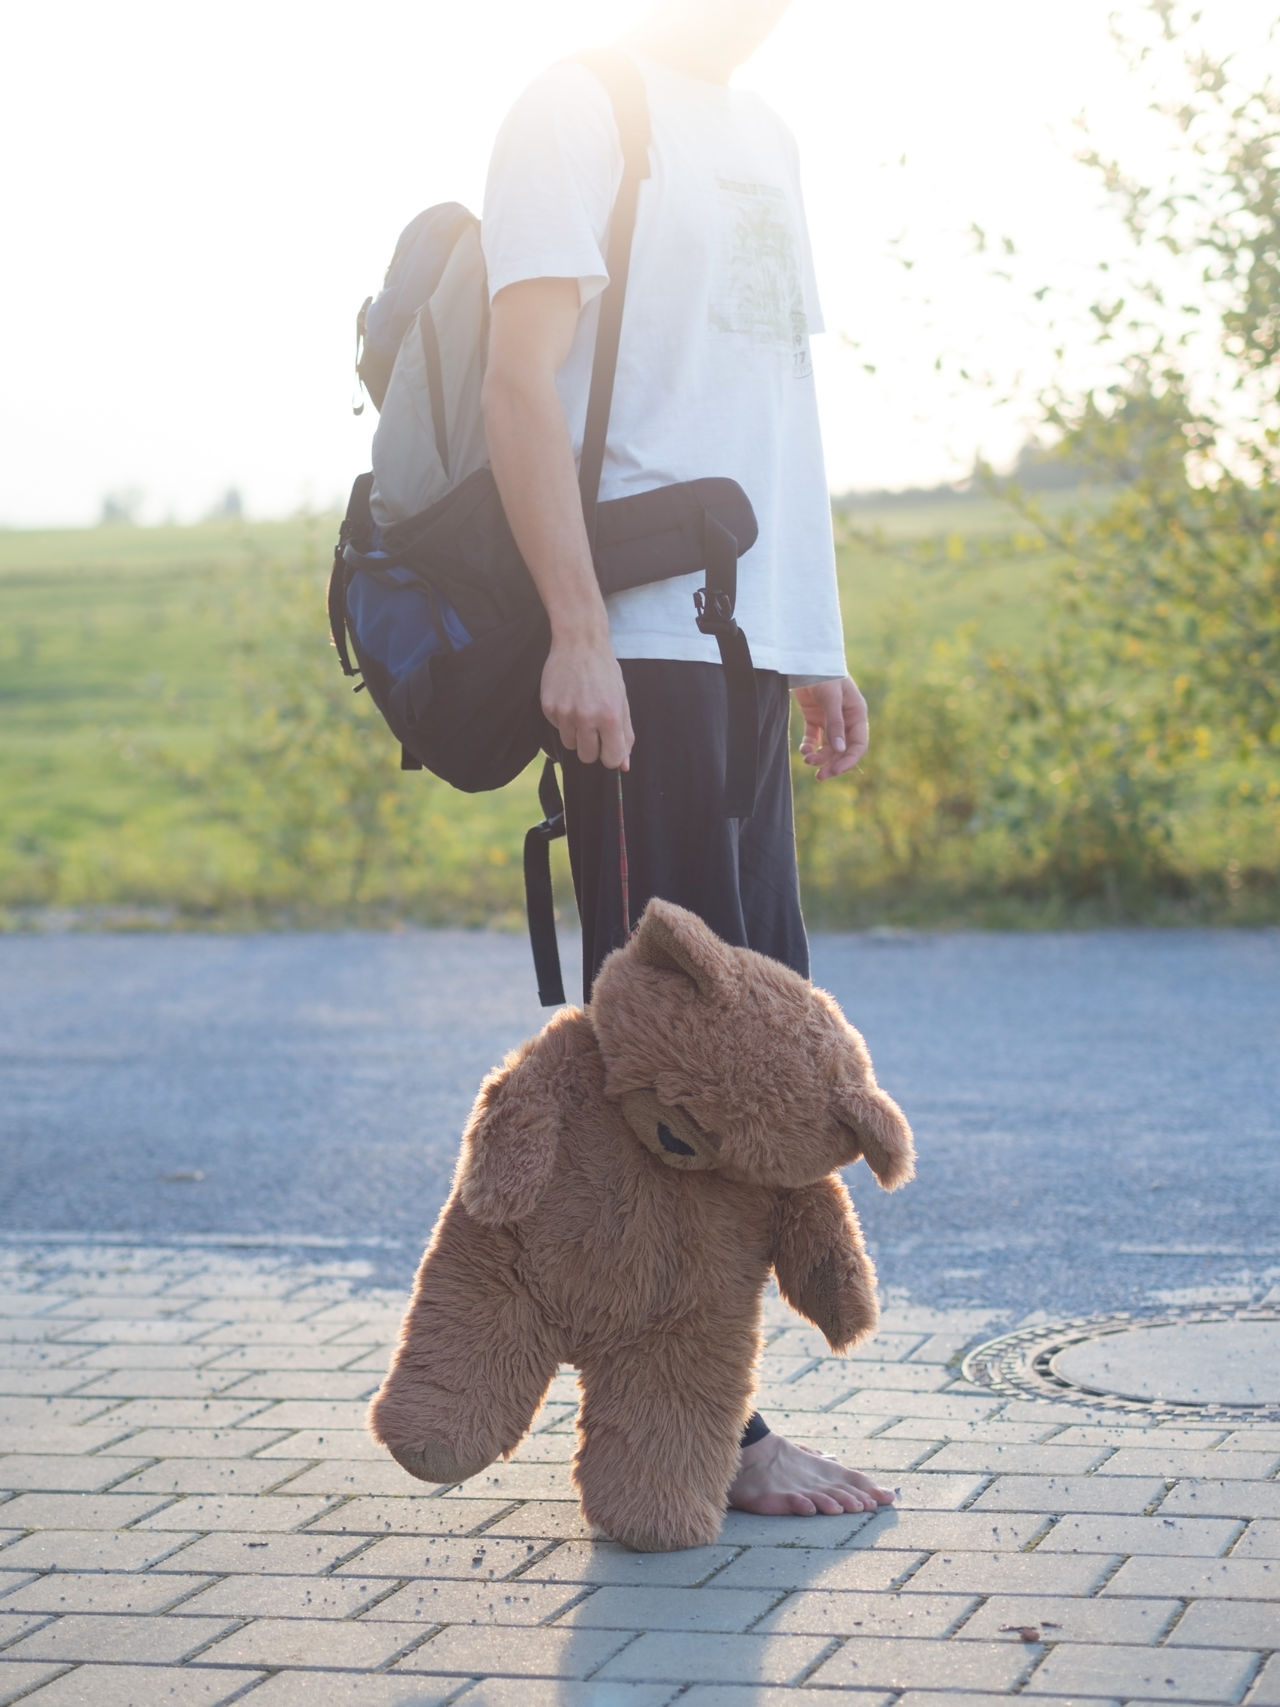 Beautiful stock photos of baer, 18-19 Years, Animal Representation, Backpack, Casual Clothing